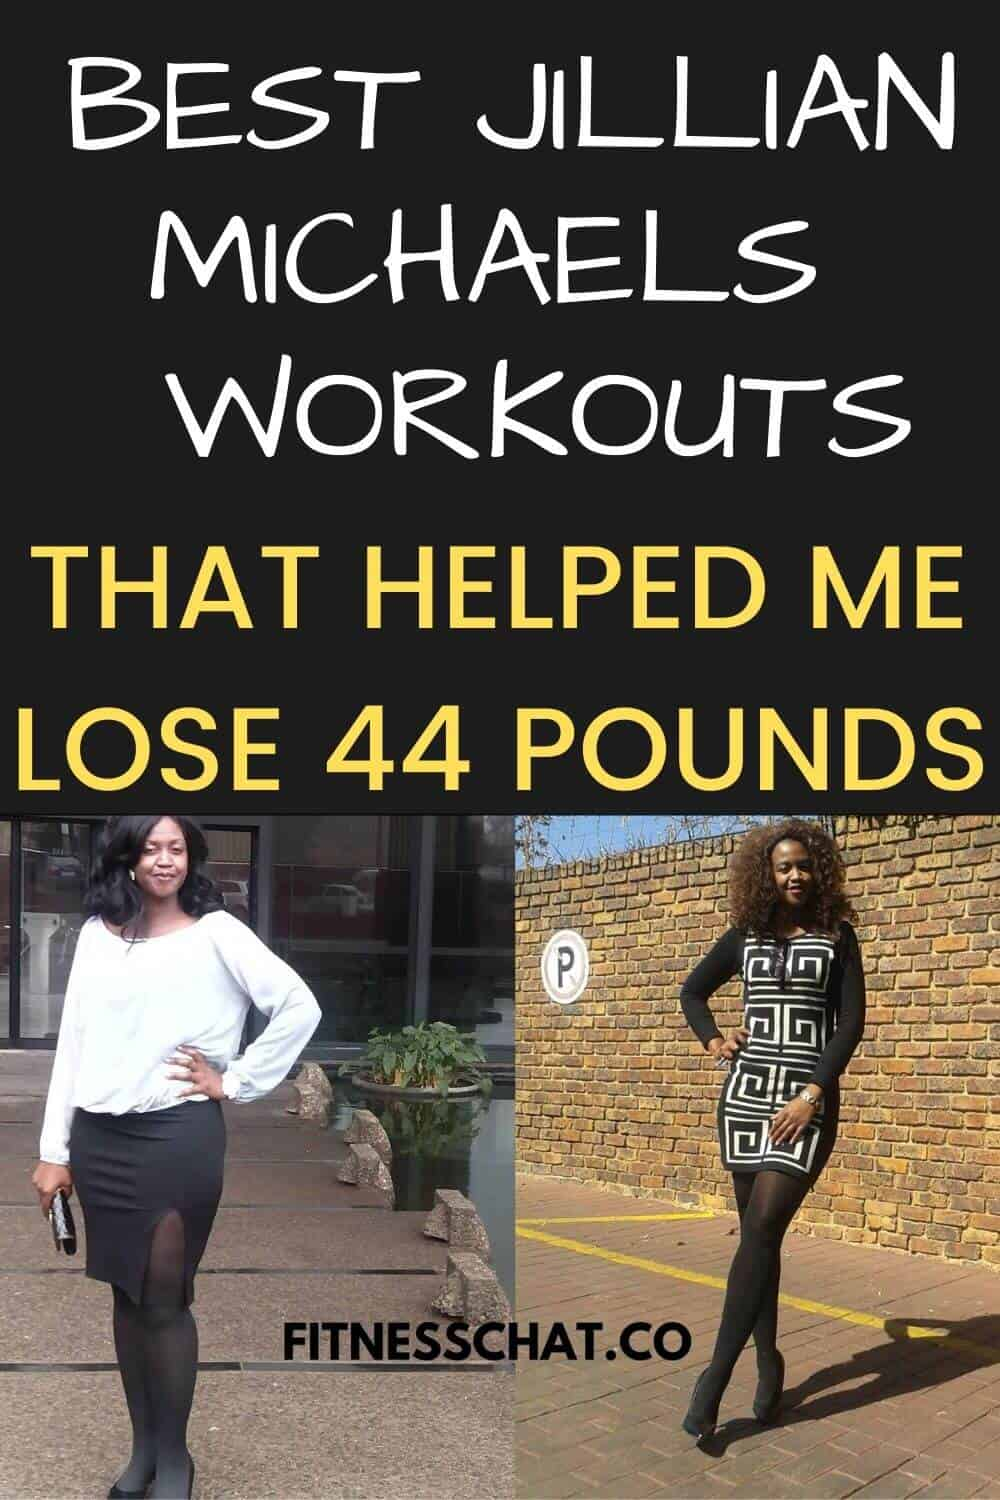 at home workout jillian michael workout that helped me lose weight